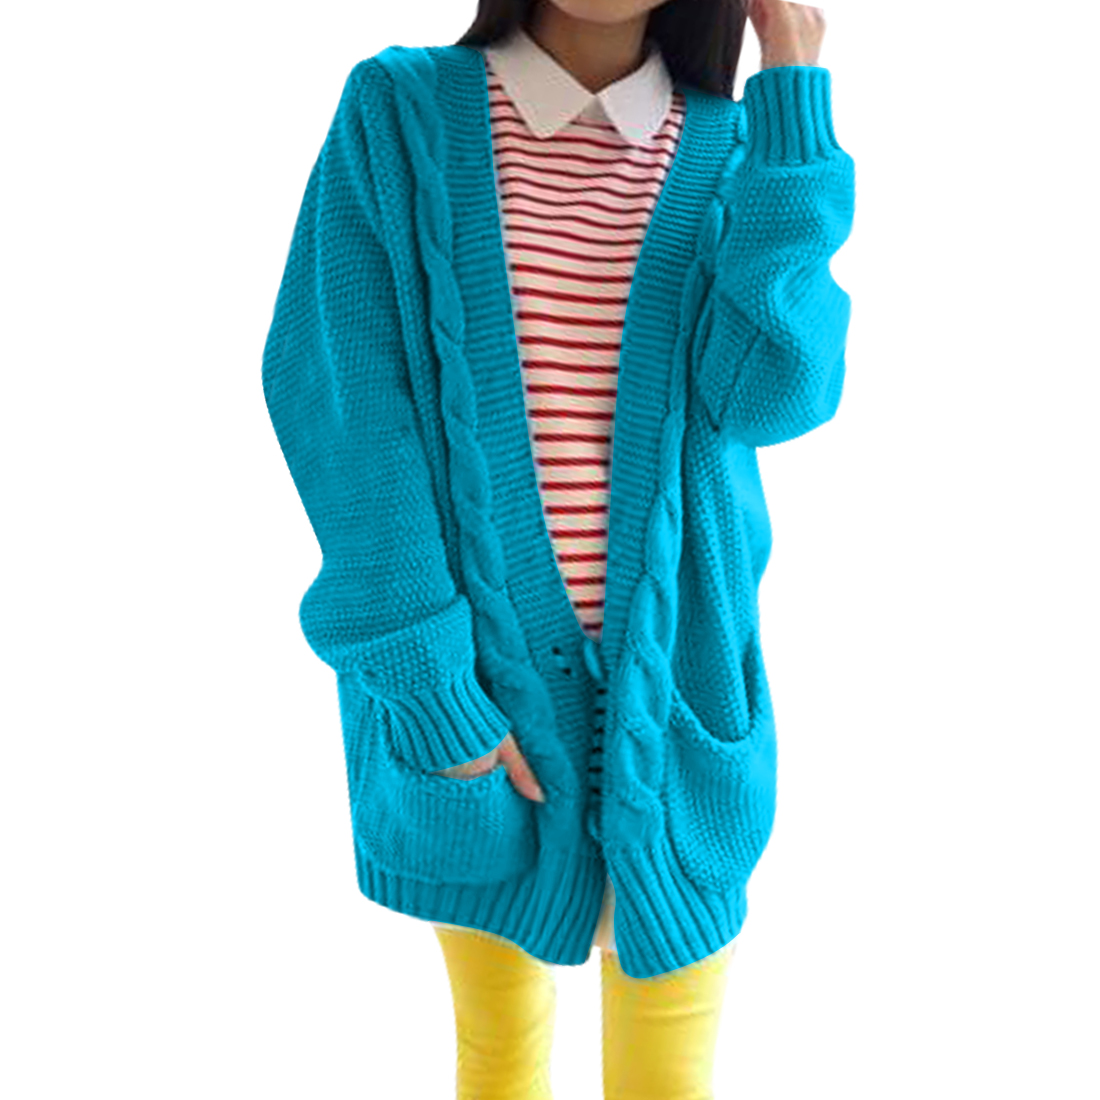 Women Batwing Sleeve Braided Double Pocket Blue Knit Cardigan Sweater M